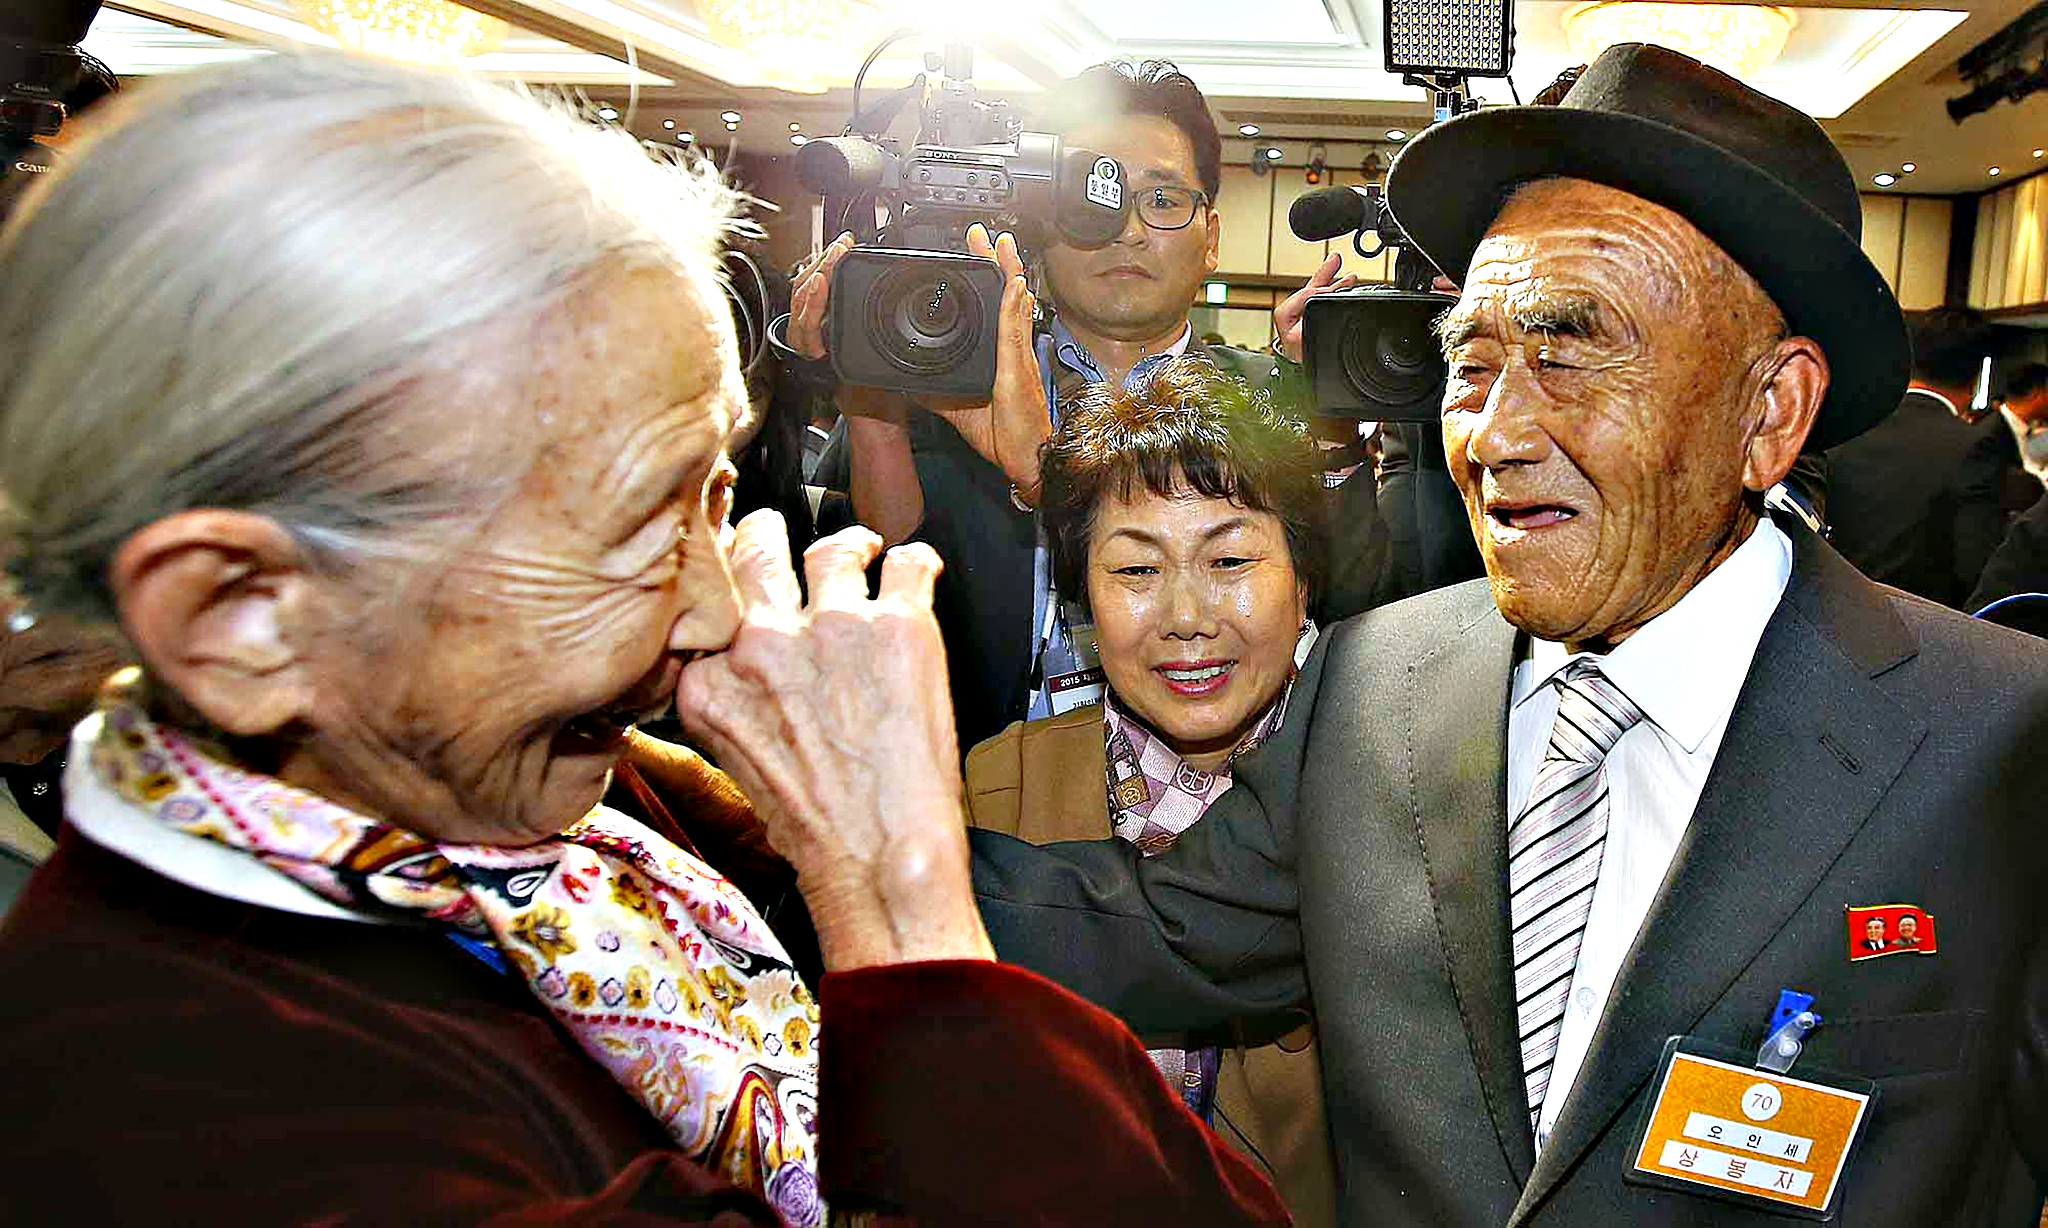 South Korean Lee Sun-Gyu, 85, smiles with her North Korean husband Oh In-Se, 83, during a separated family reunion meeting at the Mount Kumgang resort on the North's southeastern coast onTuesday. Nearly 400 mostly elderly South Koreans, carrying gifts of warm clothes, cash and cosmetics, crossed into North Korea for a rare meeting with relatives they have either never met or last saw more than six decades ago